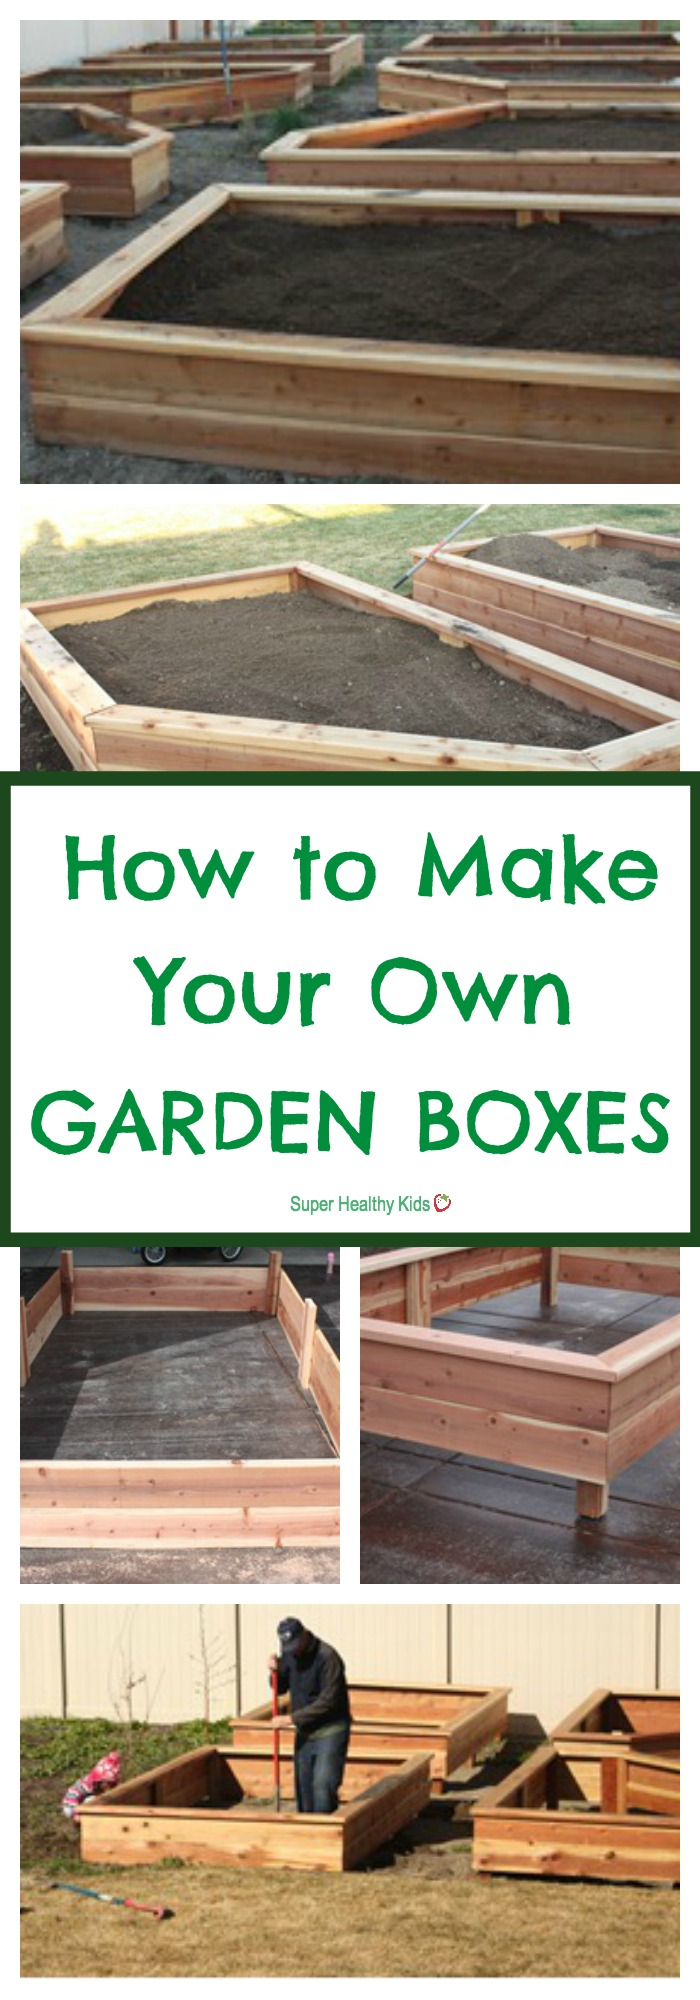 Make Your Own Raised Garden Box